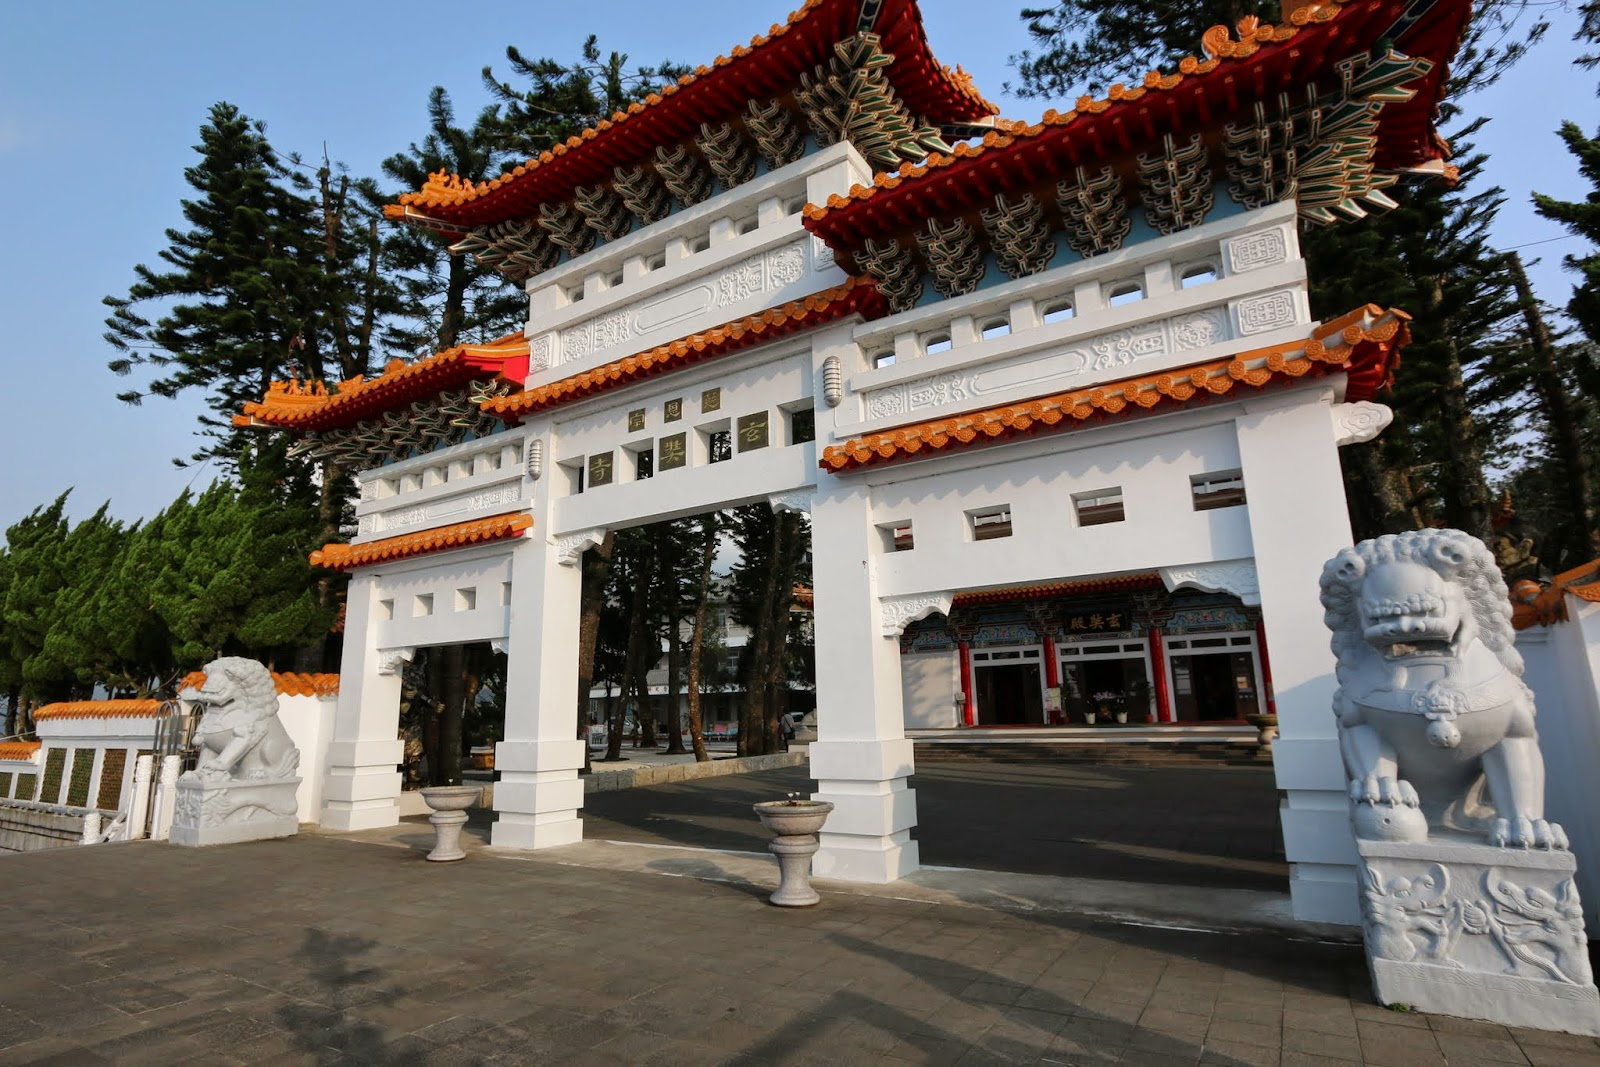 The front gate entrance of Xuanzang Temple nearby Sun Moon Lake in Nantou County of Taiwan